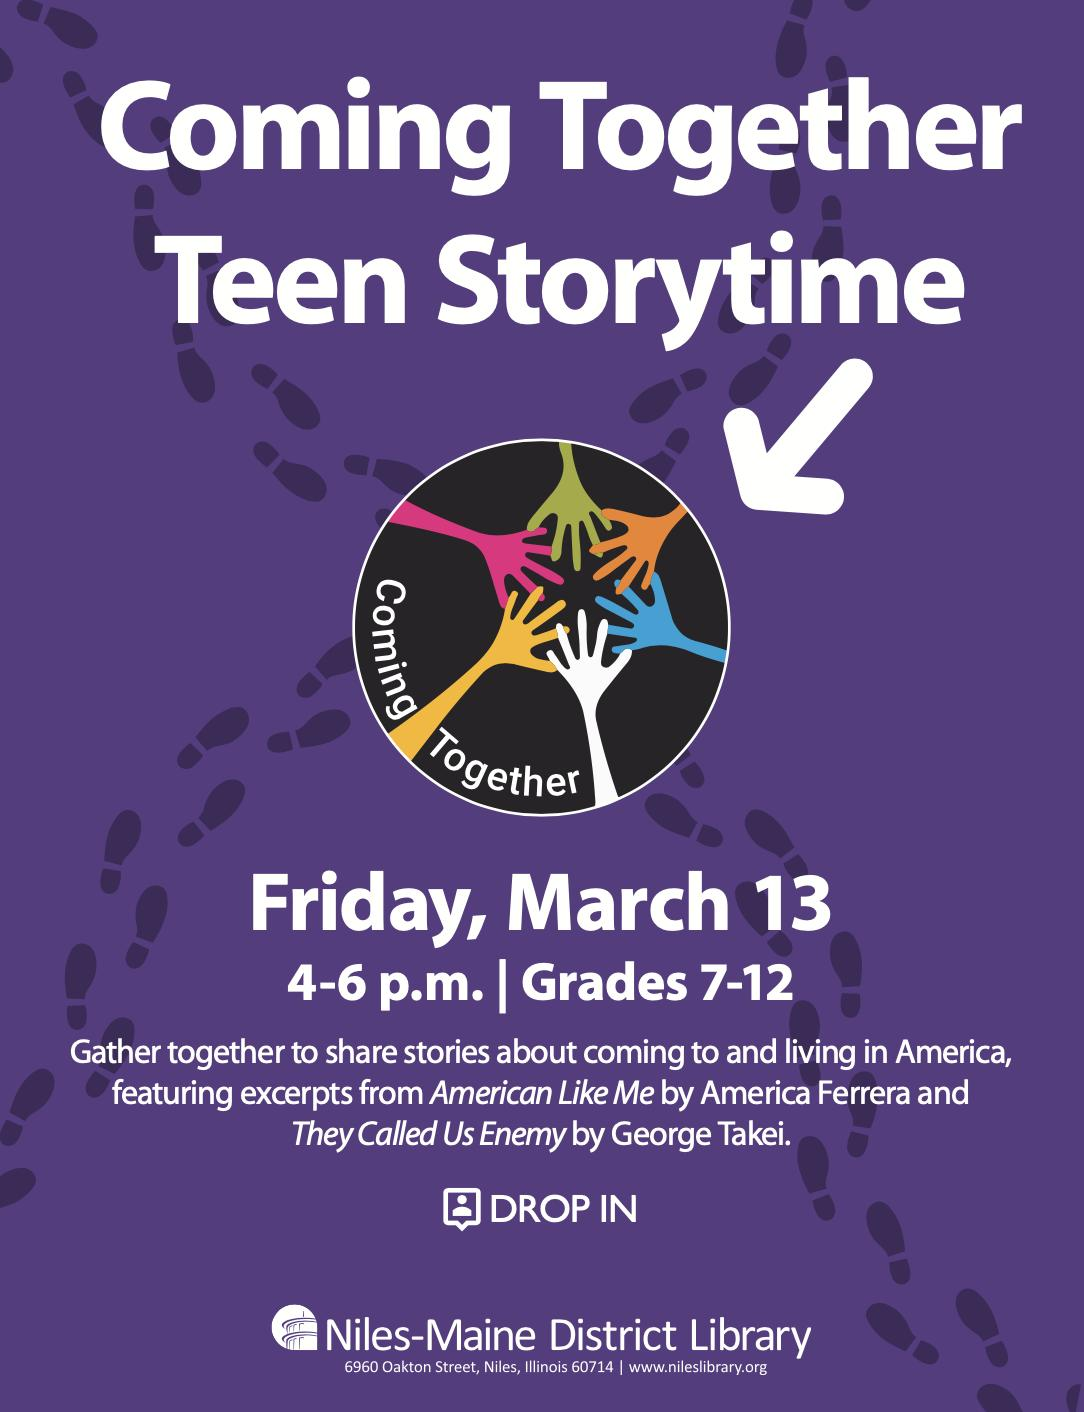 Coming Together Teen Storytime at Niles-Maine District Library